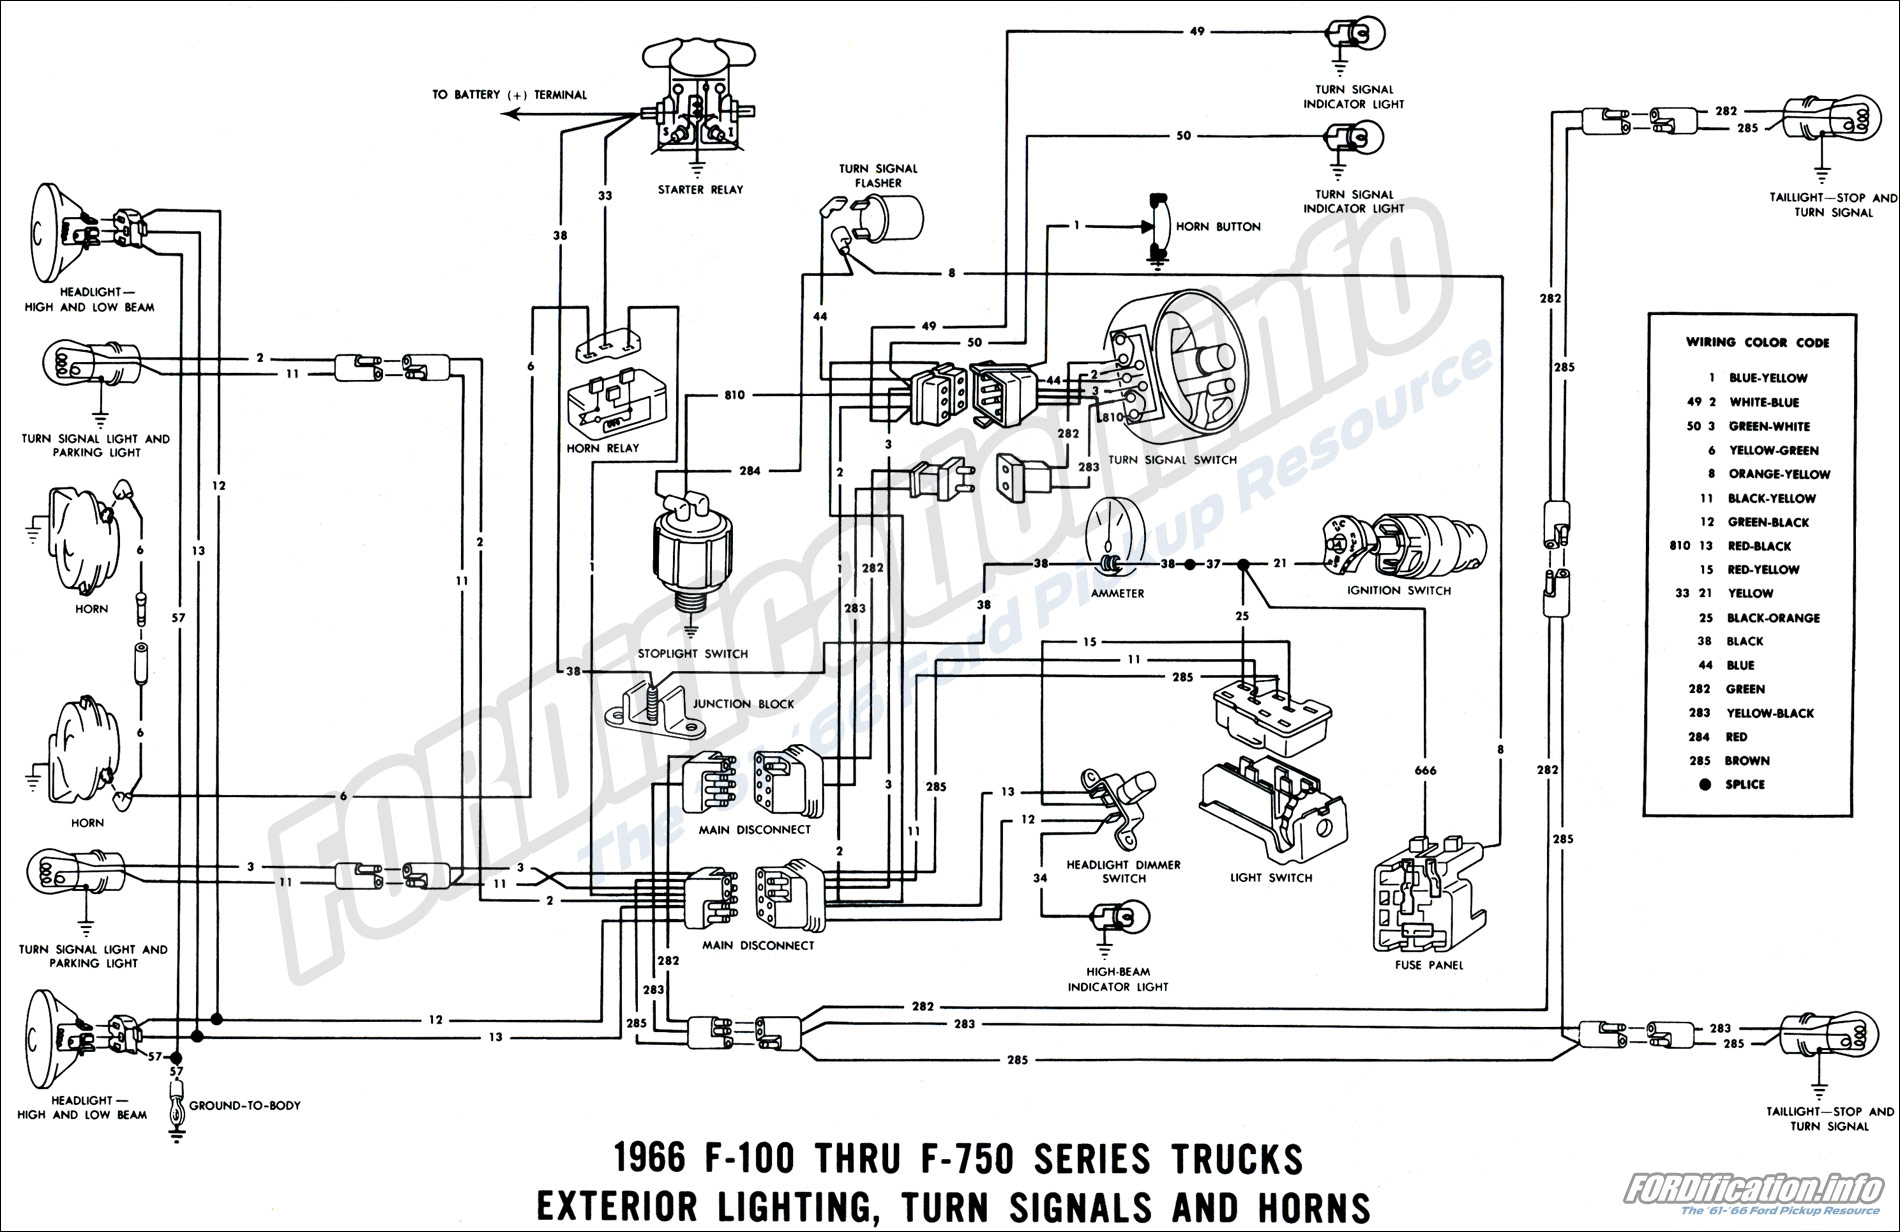 Fl Wiring Diagram Turn Signals 1966 Ford Truck Wiring Diagrams Fordification Info The